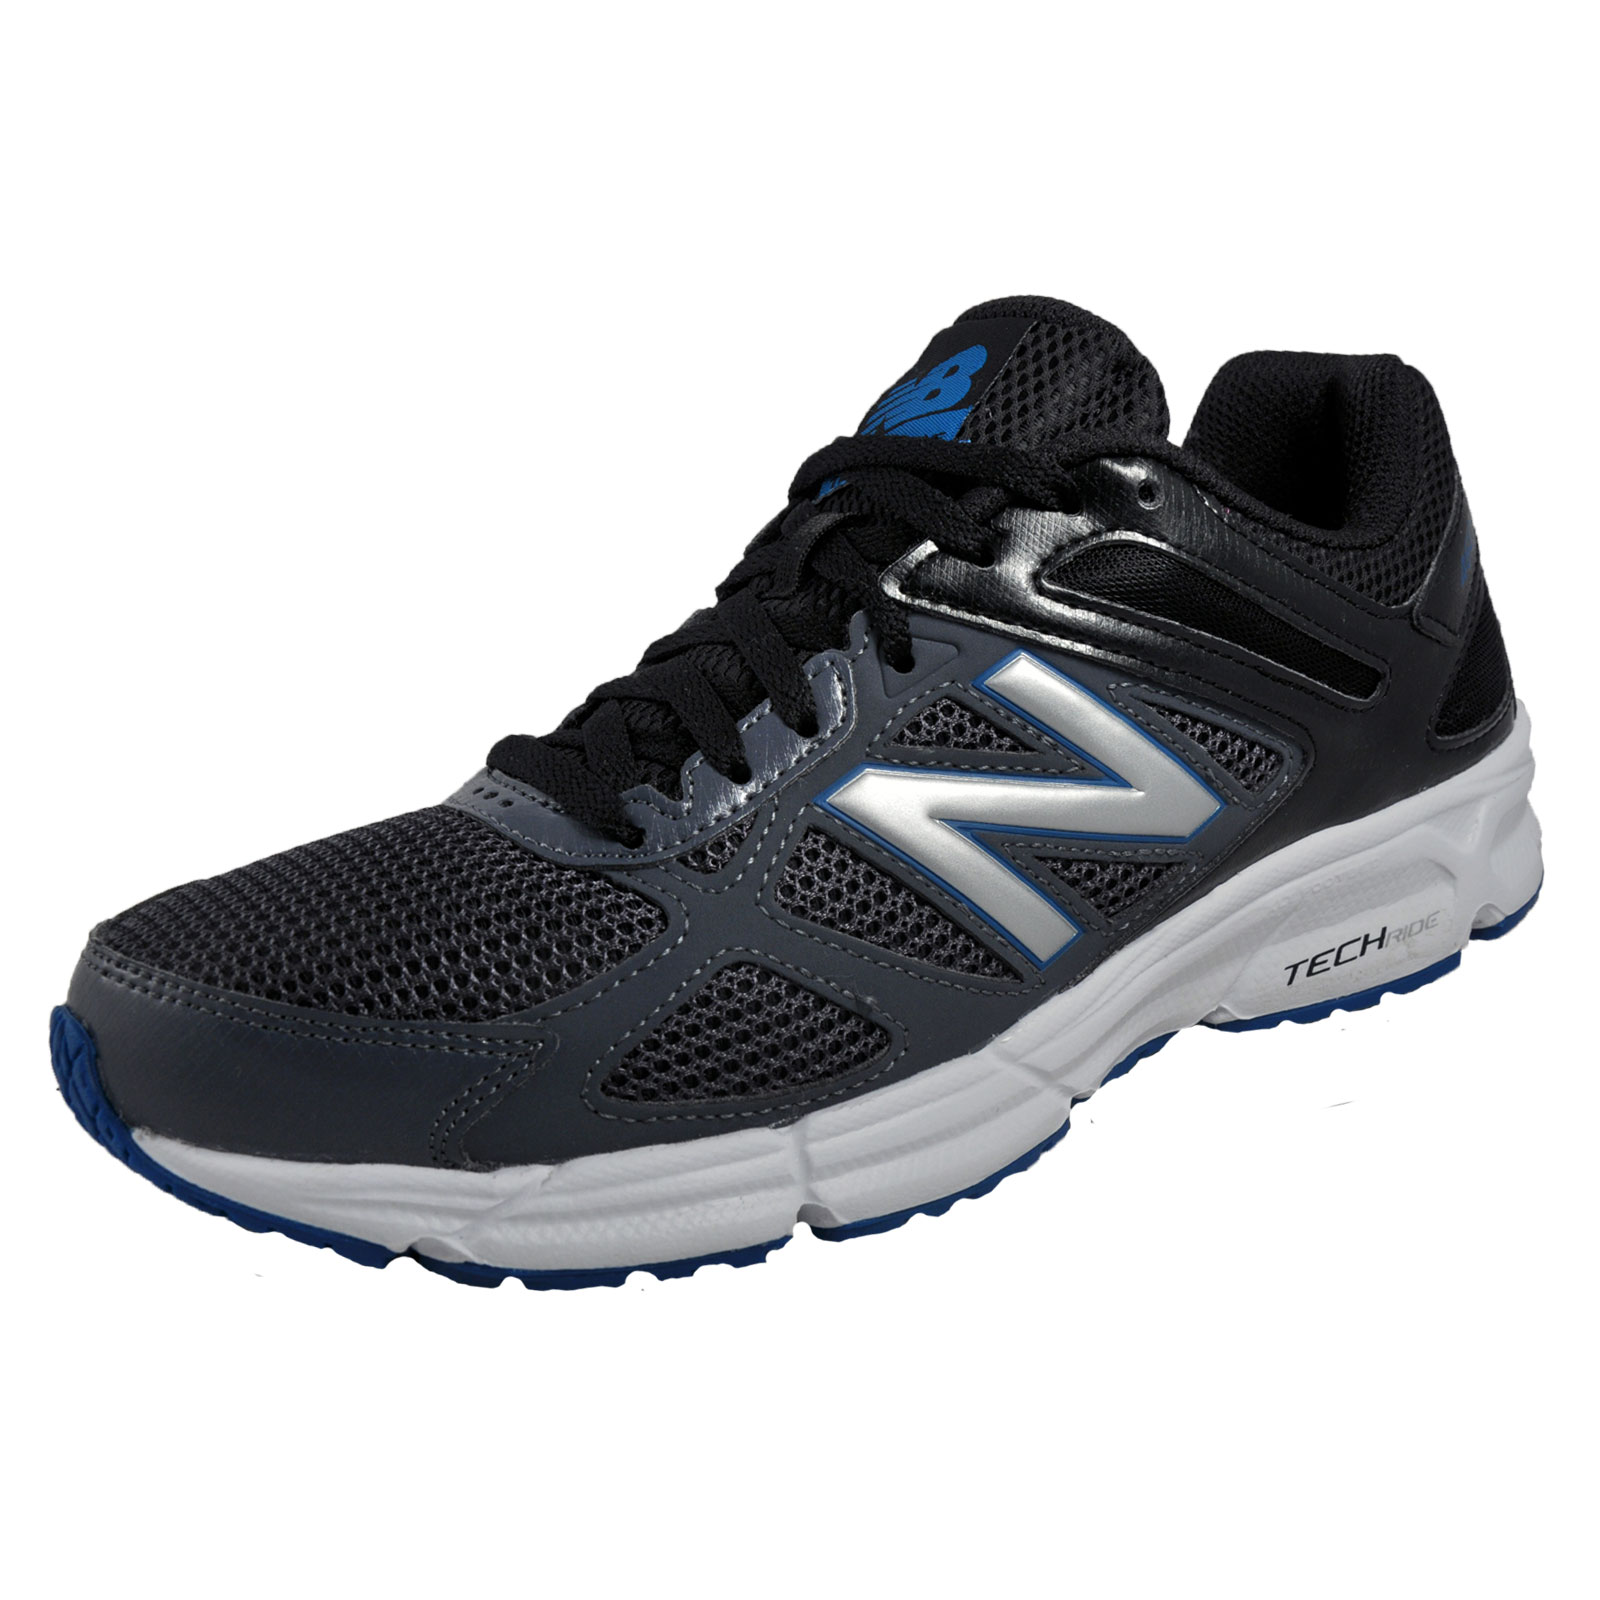 New Balance 460 Shoes